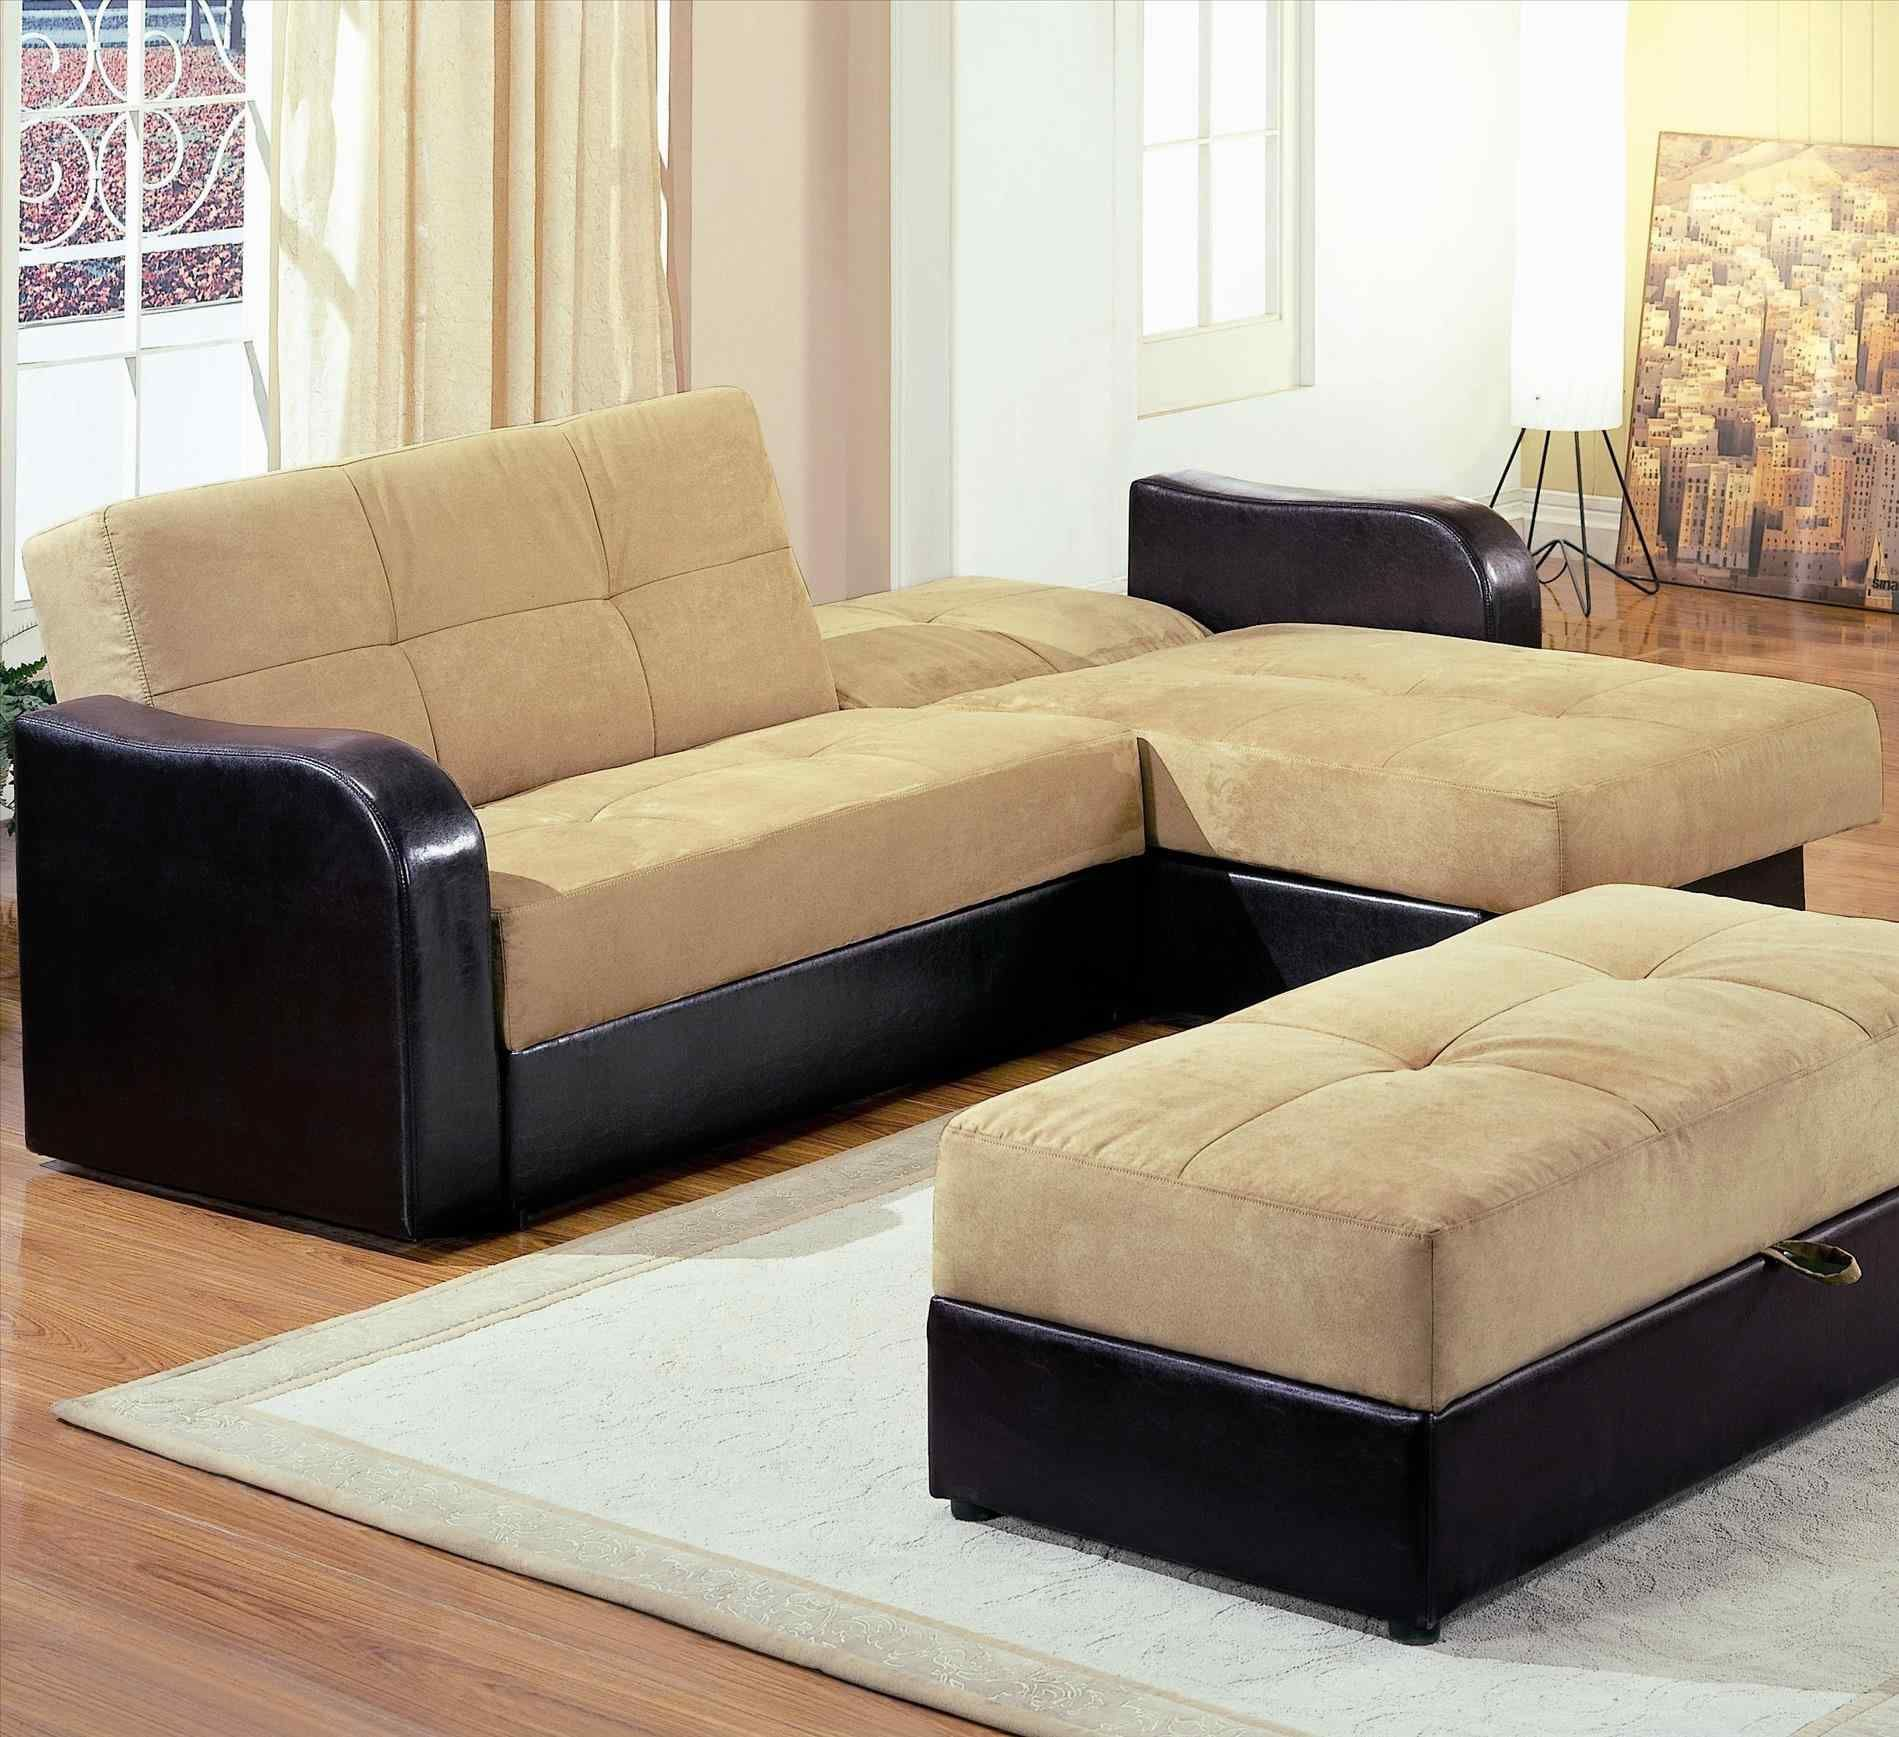 Sectional S Laz Uptown Bed Lazy Boy Sofa Sleepers Sectional S Laz